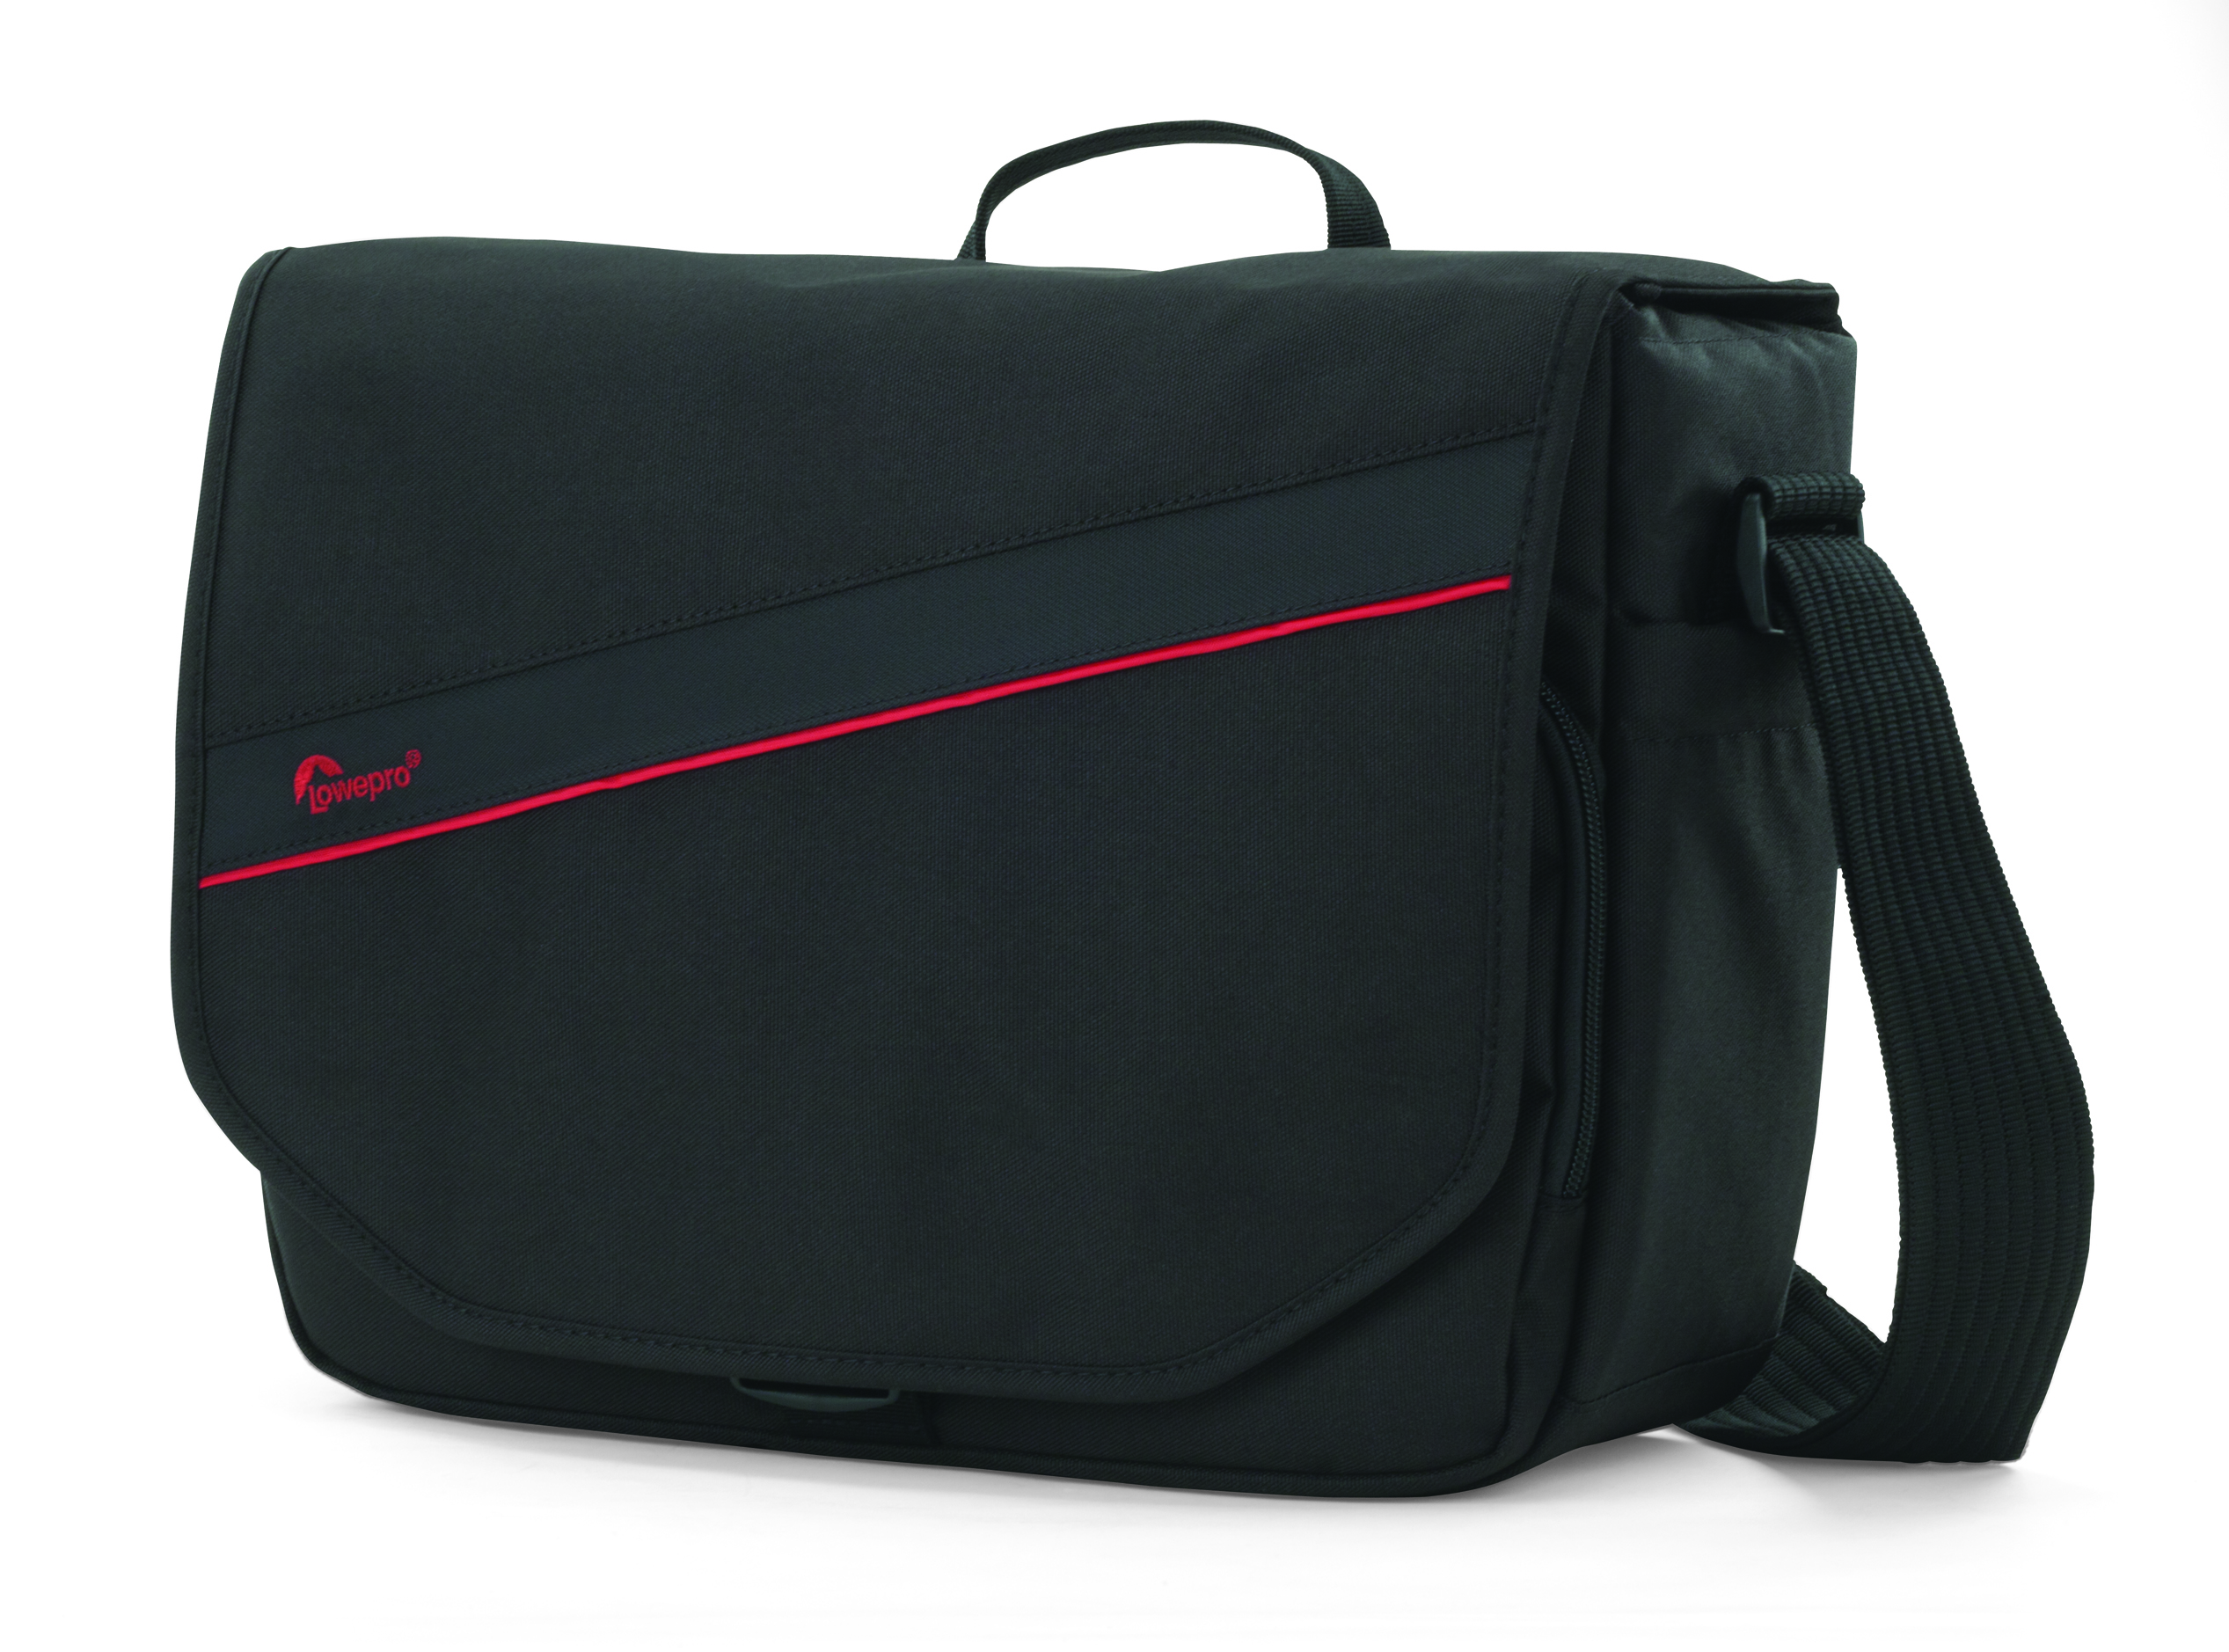 Event Messenger 250 Capture life's events with an all-access shoulder bag built to fit your complete camera kit.